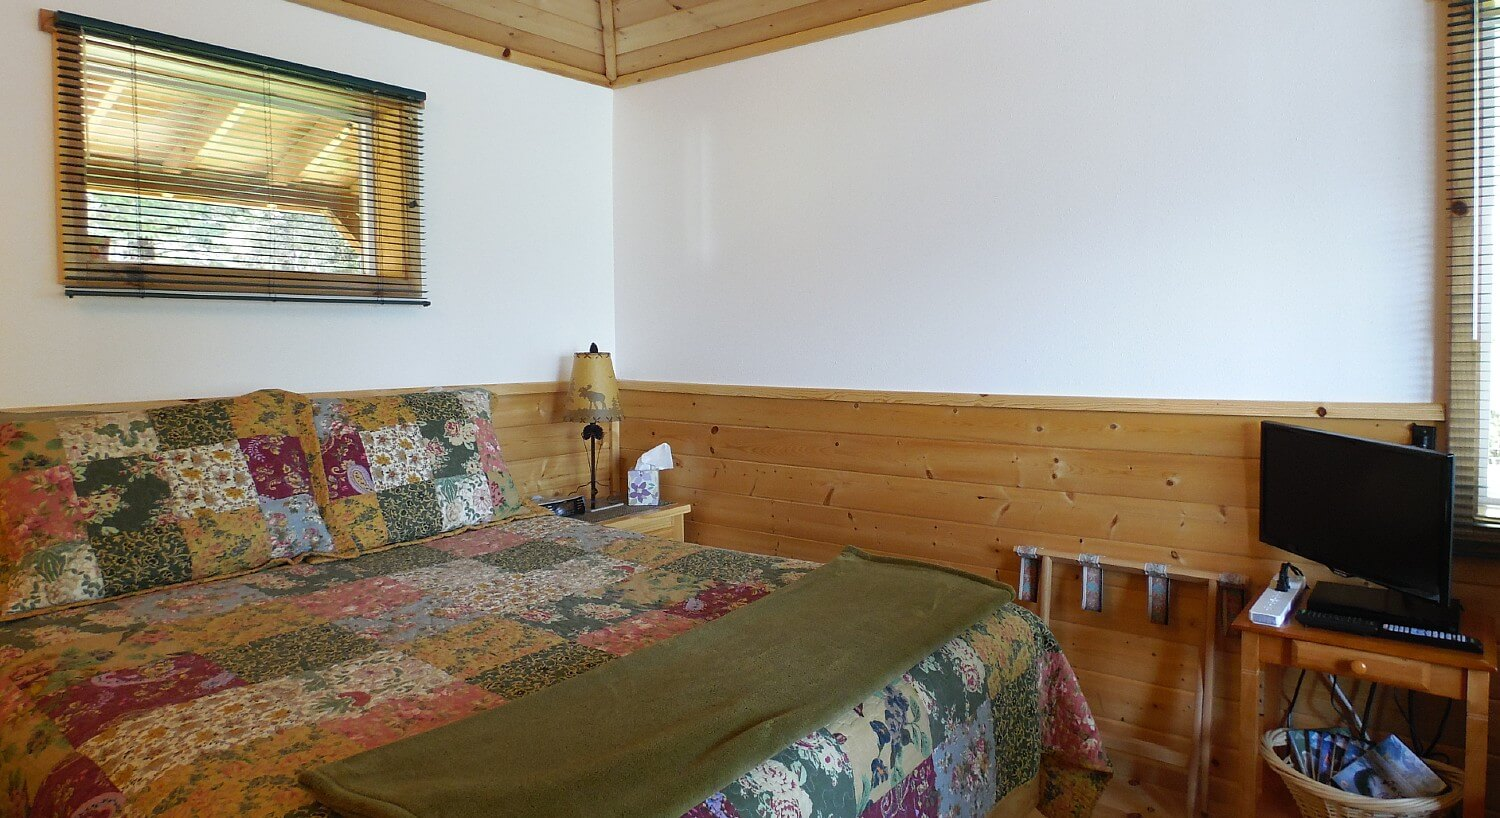 Cabin room with queen bed covered in a colorful quilt, small tv table, lamp and two windows